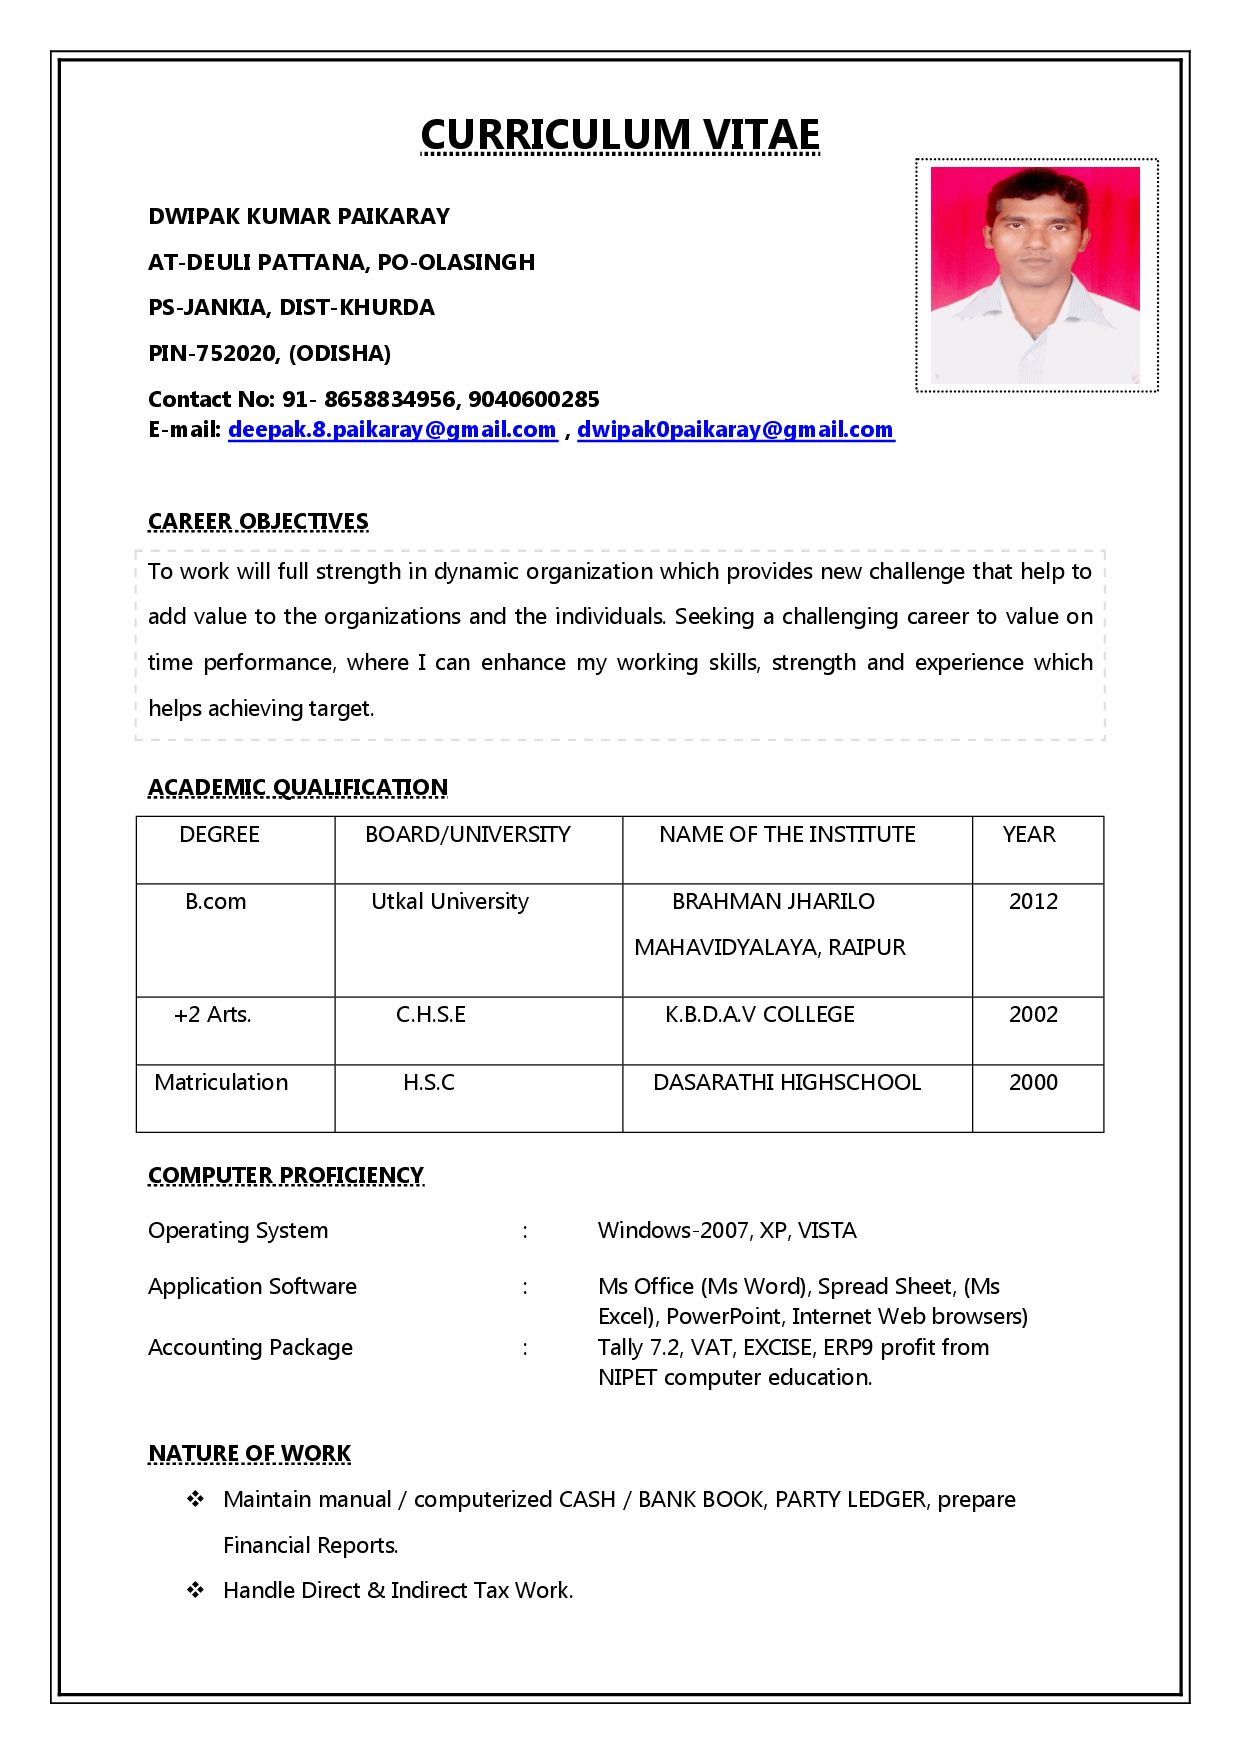 Resume Format Job Interview Resume Format Job Resume Format Sample Resume Format Job Resume